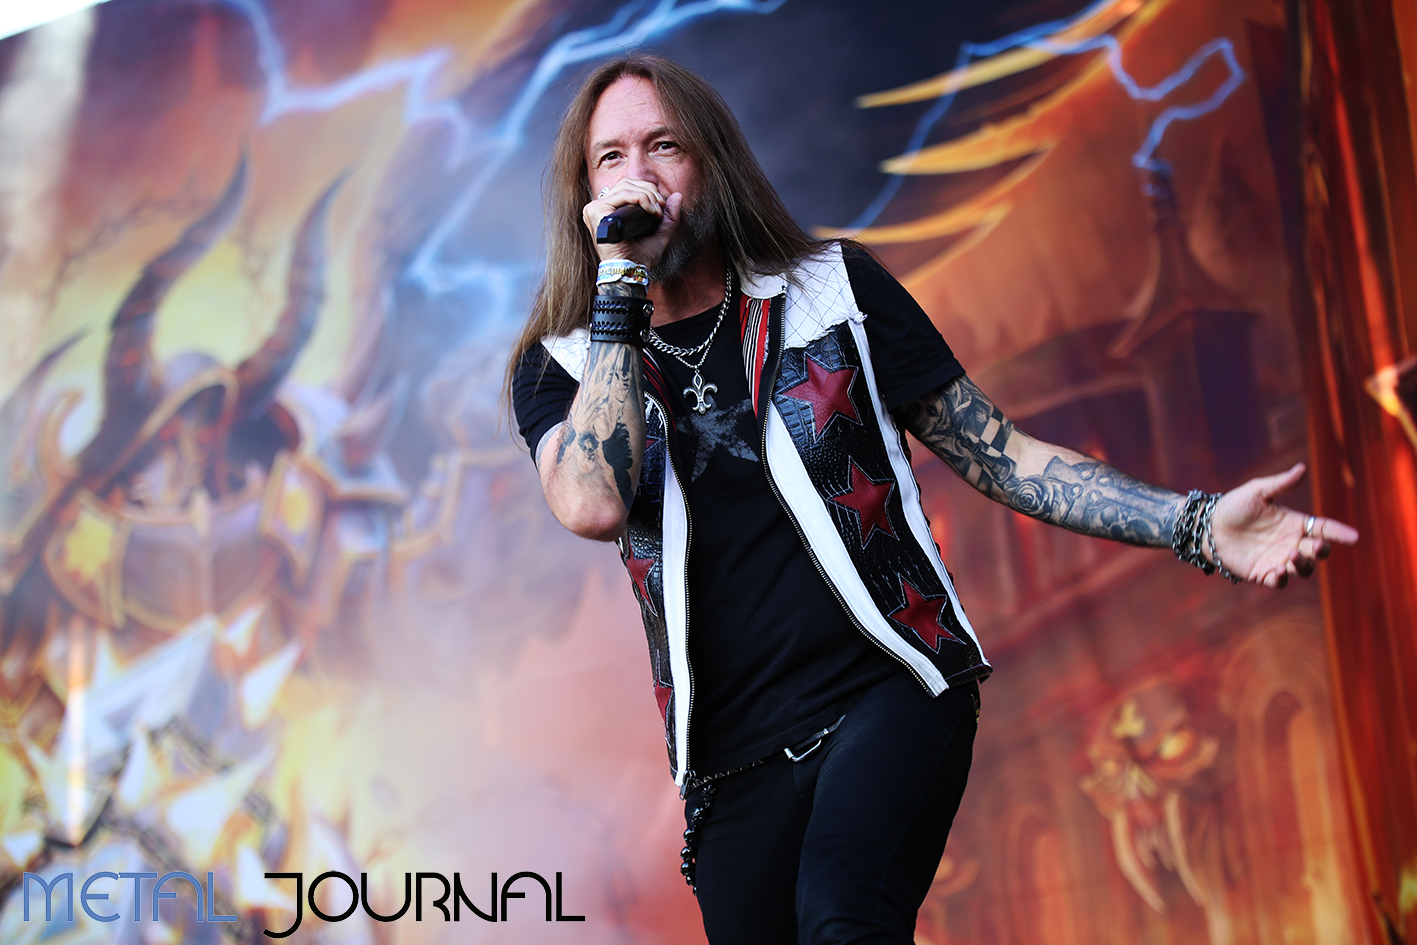 hammerfall - leyendas del rock 2019 metal journal pic 7